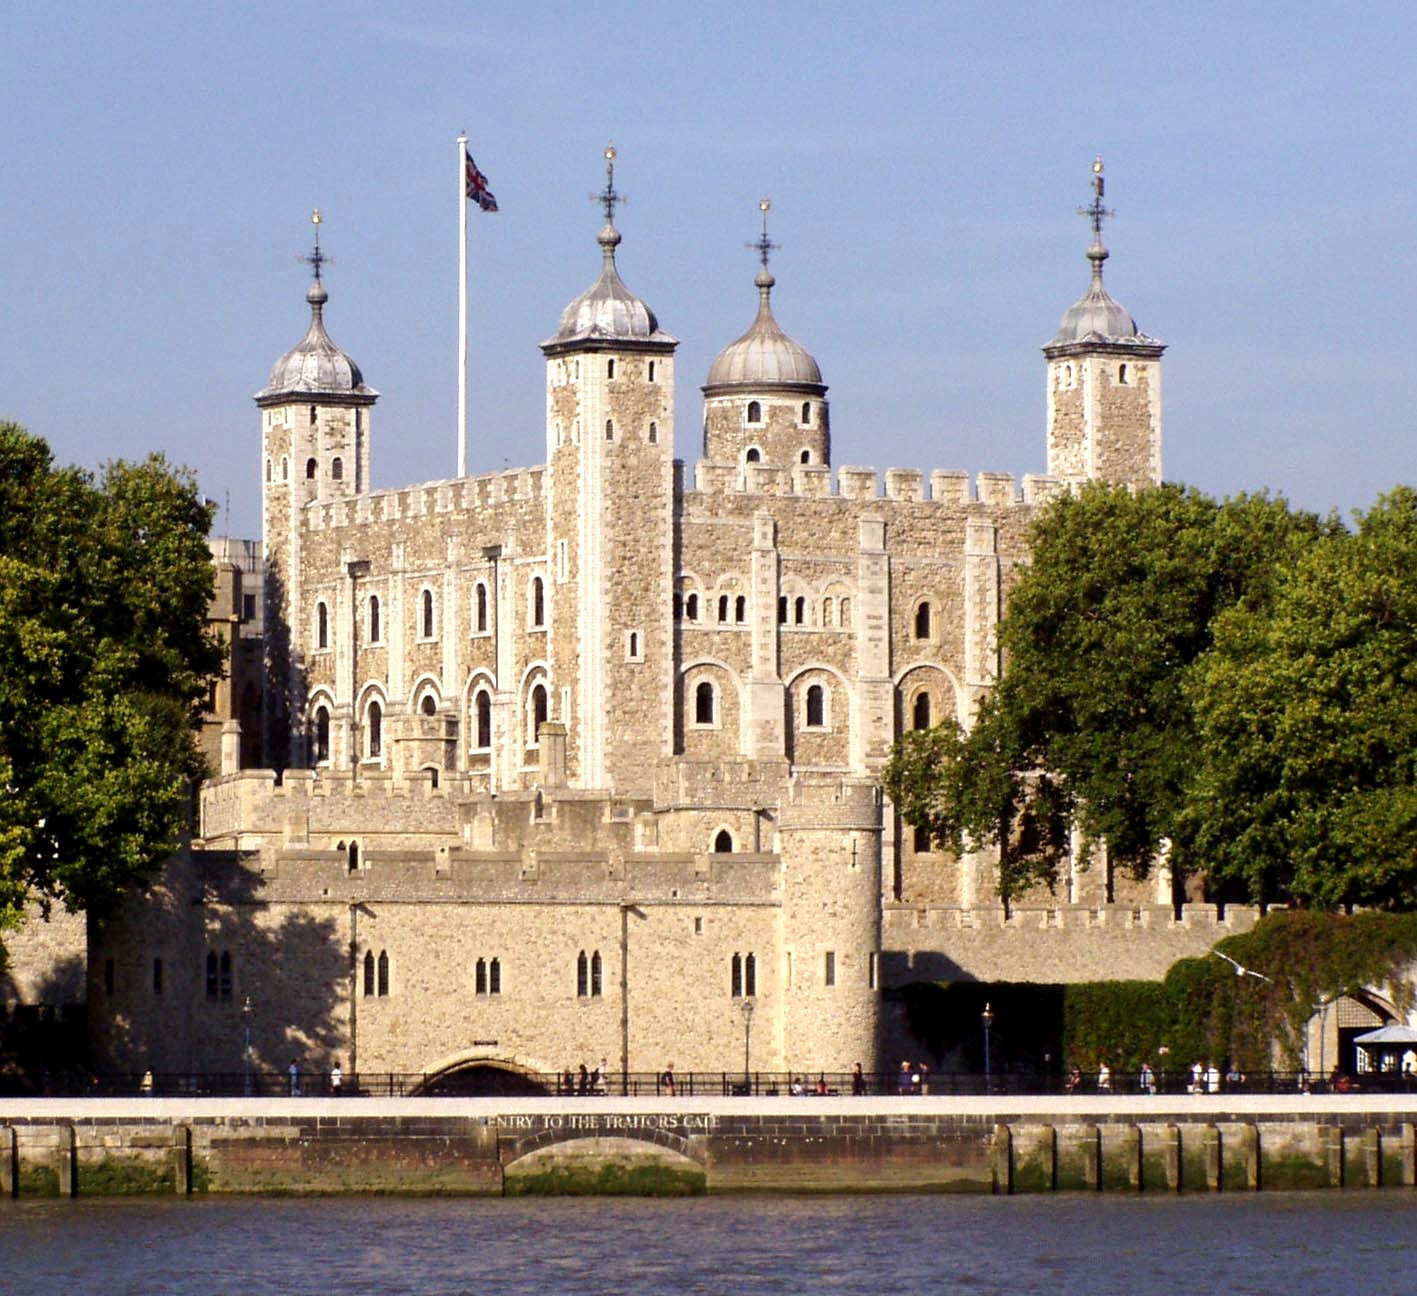 Image Result For What Building Houses The Crown Jewels